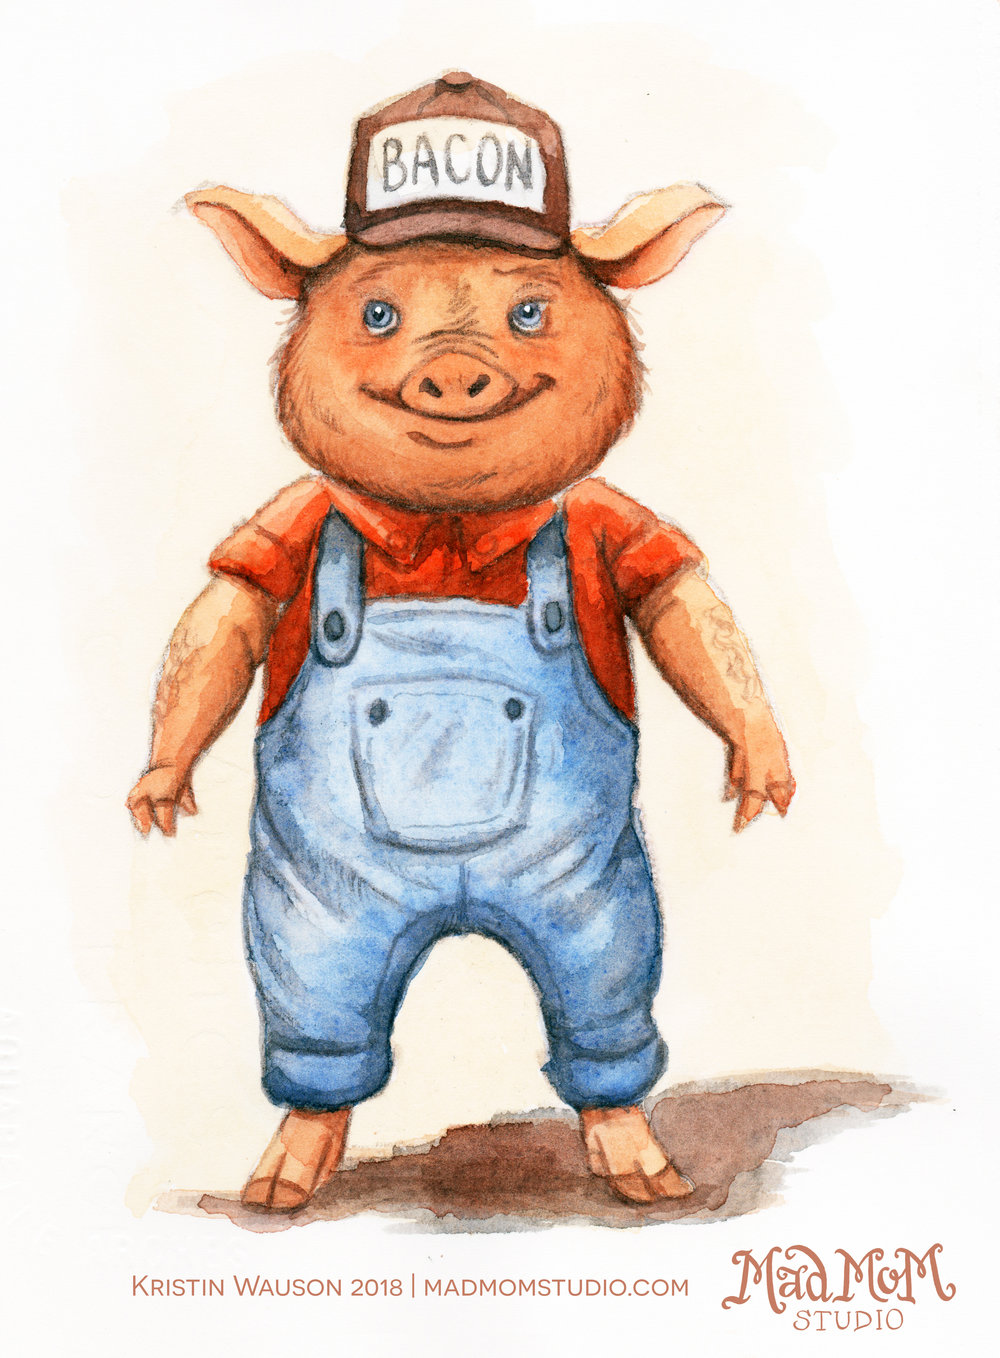 I used the Peter De Séve Method for this illustration of Chris P. Pig.